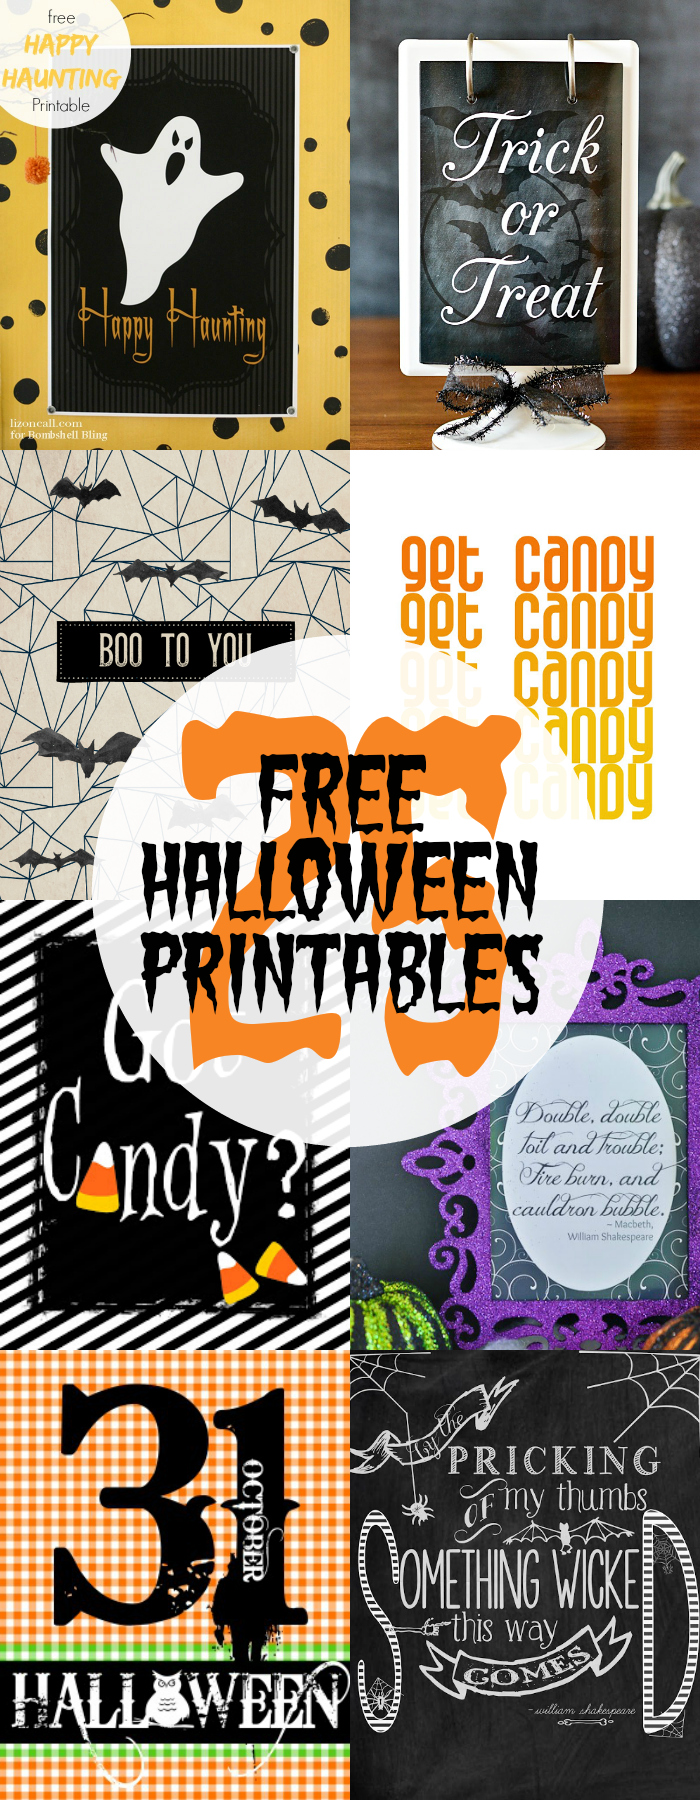 Halloween Printables pin collage